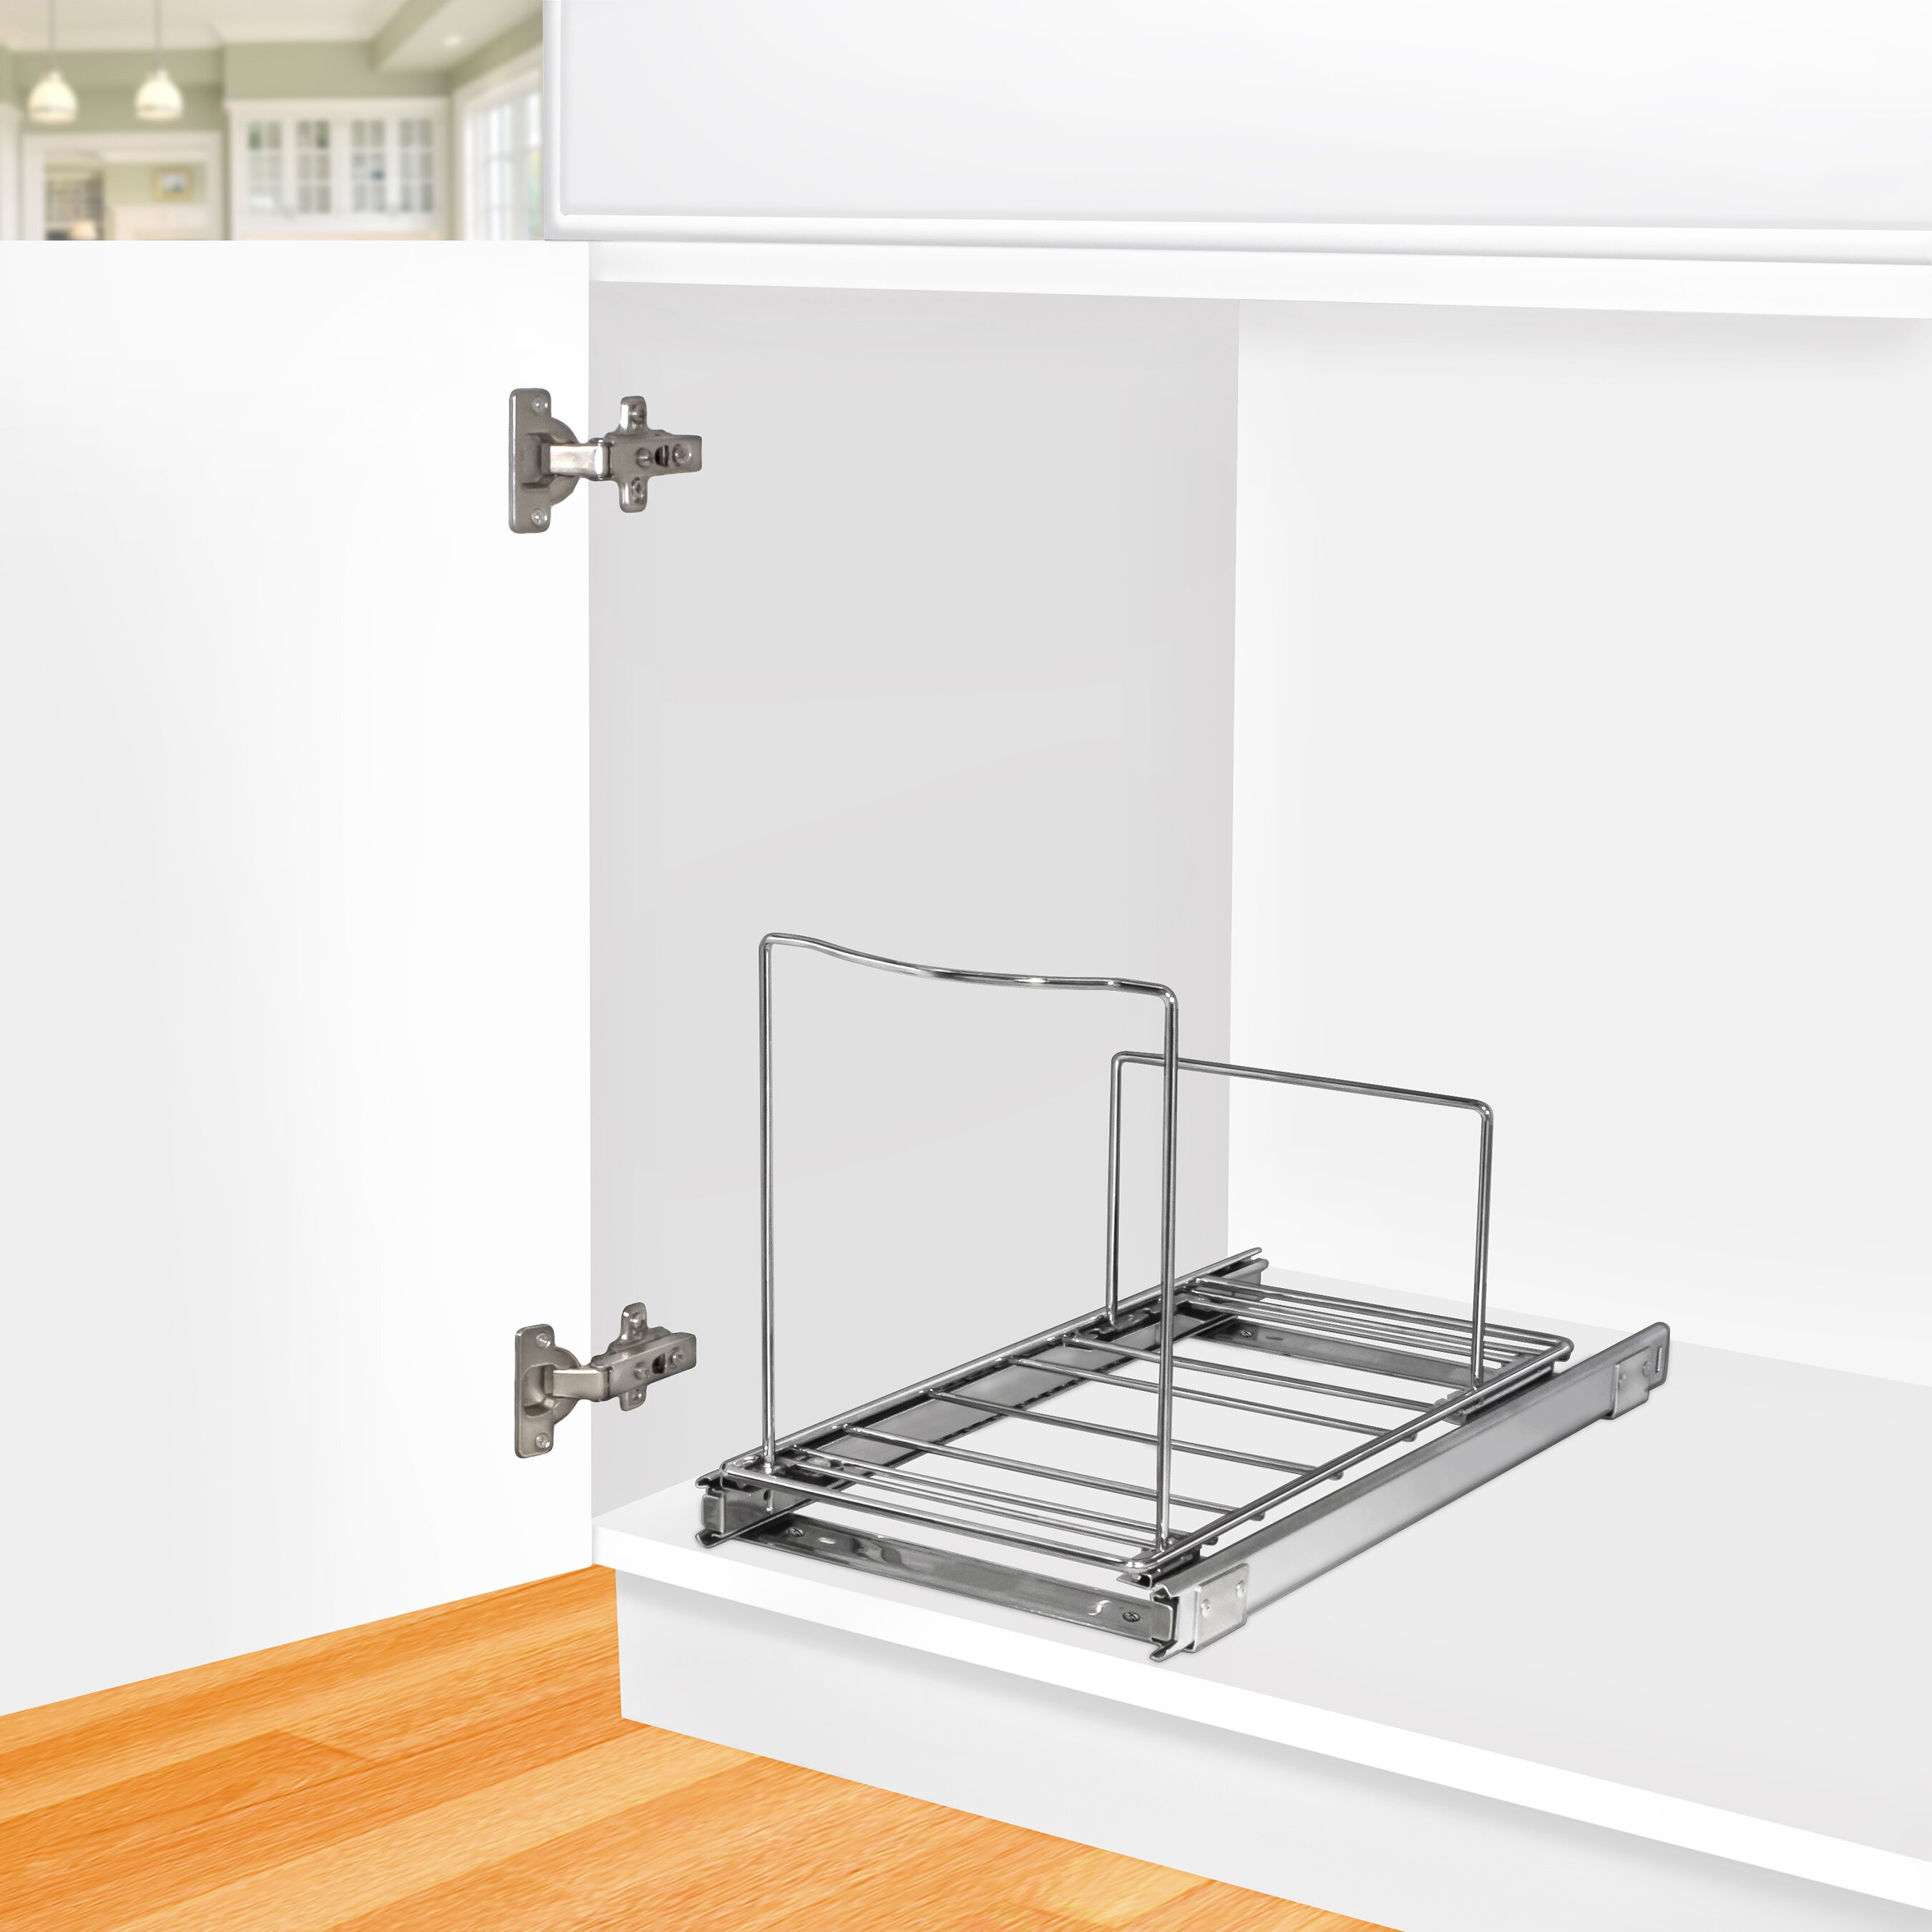 Lynk roll out under sink cabinet organizer pull out two tier sliding - Cabinet Anizers You Ll Love Wayfair Lynk Professional Roll Out Cabinet Anizer Pull Under Sliding